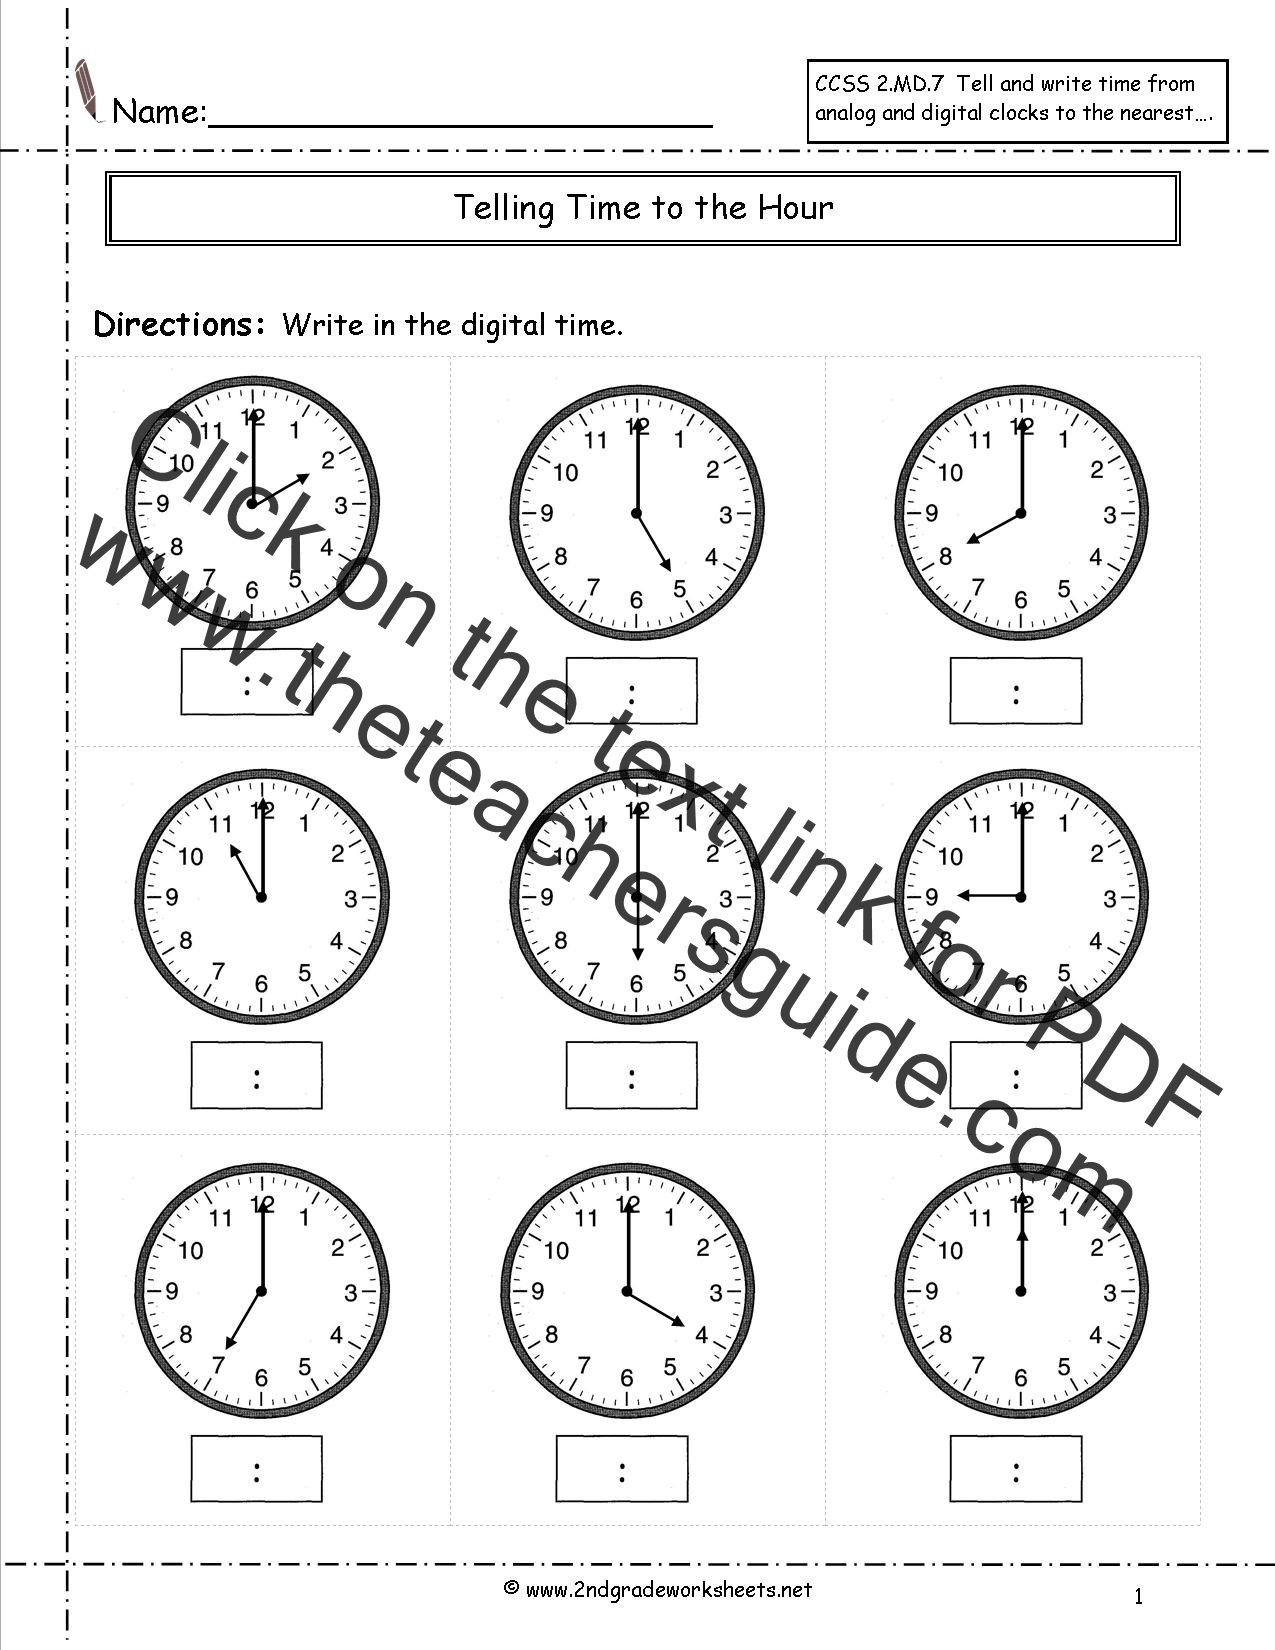 Worksheets Telling Time Worksheets 2nd Grade telling and writing time worksheets to hour worksheet